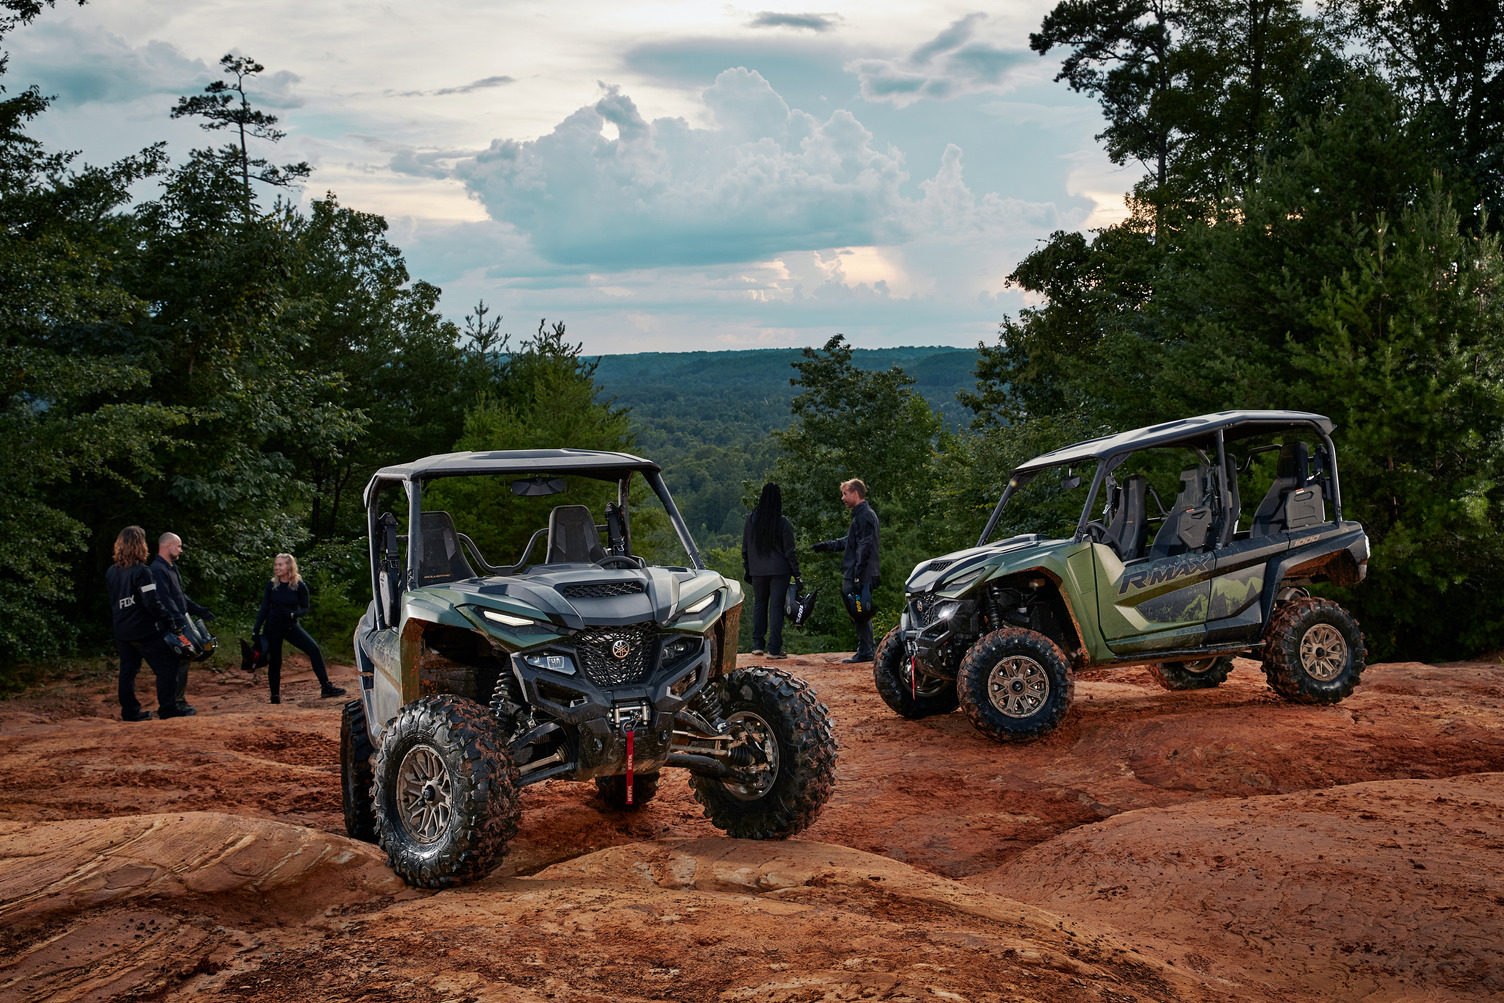 201009 Yamaha to Host Livestream Covering the Class-Leading Side-by-Sides October 21